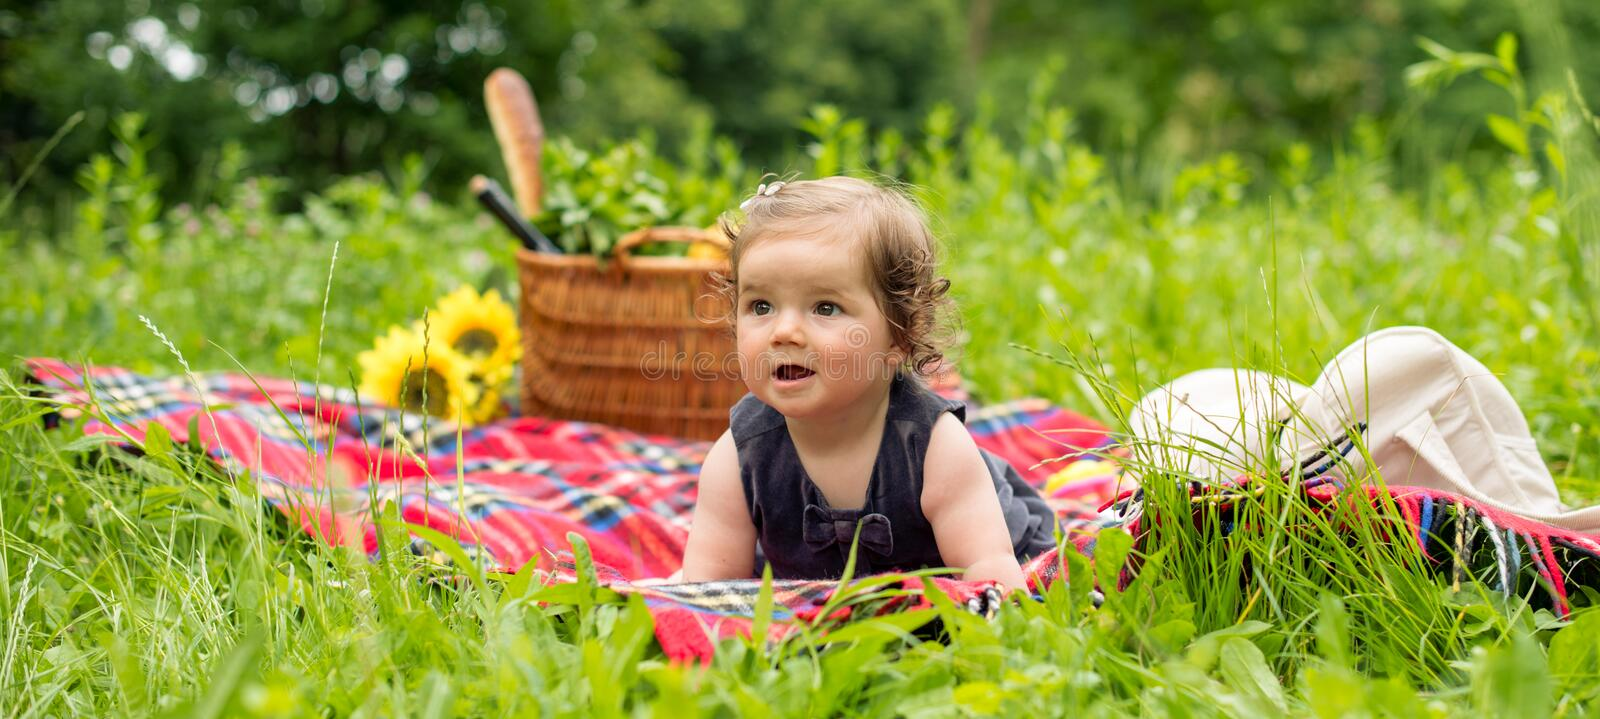 Baby on a picnic, panorama. In nature stock photo